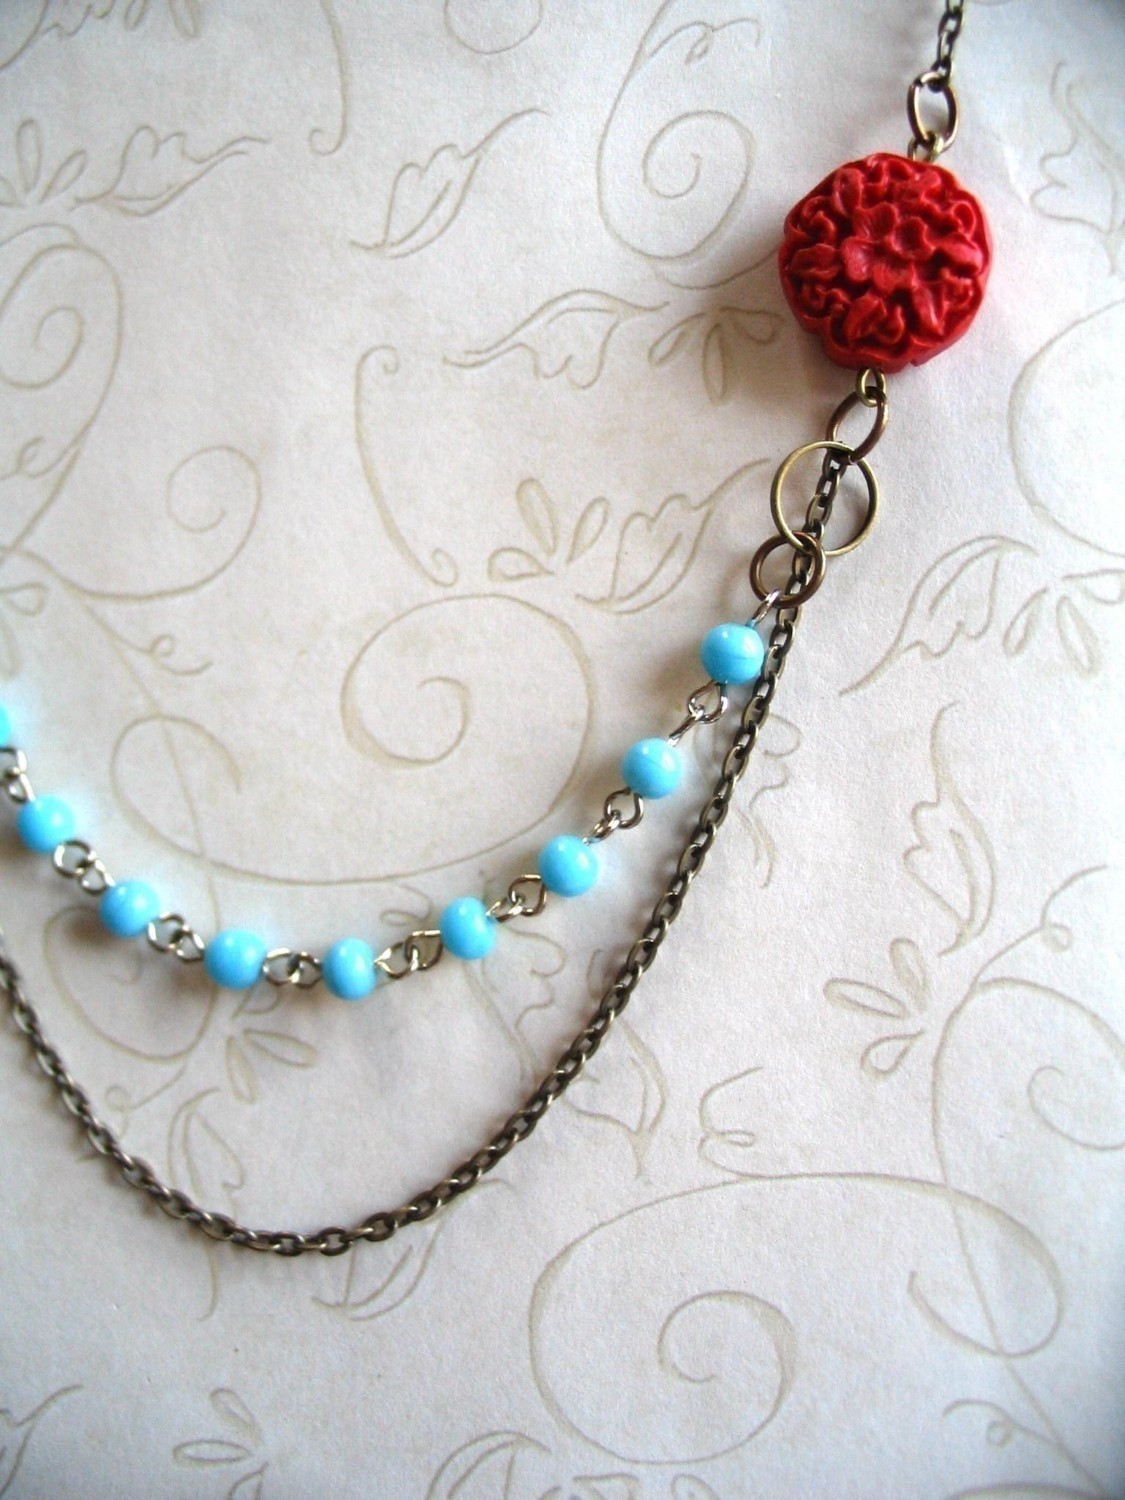 Red, white and blue necklace, vintage inspired